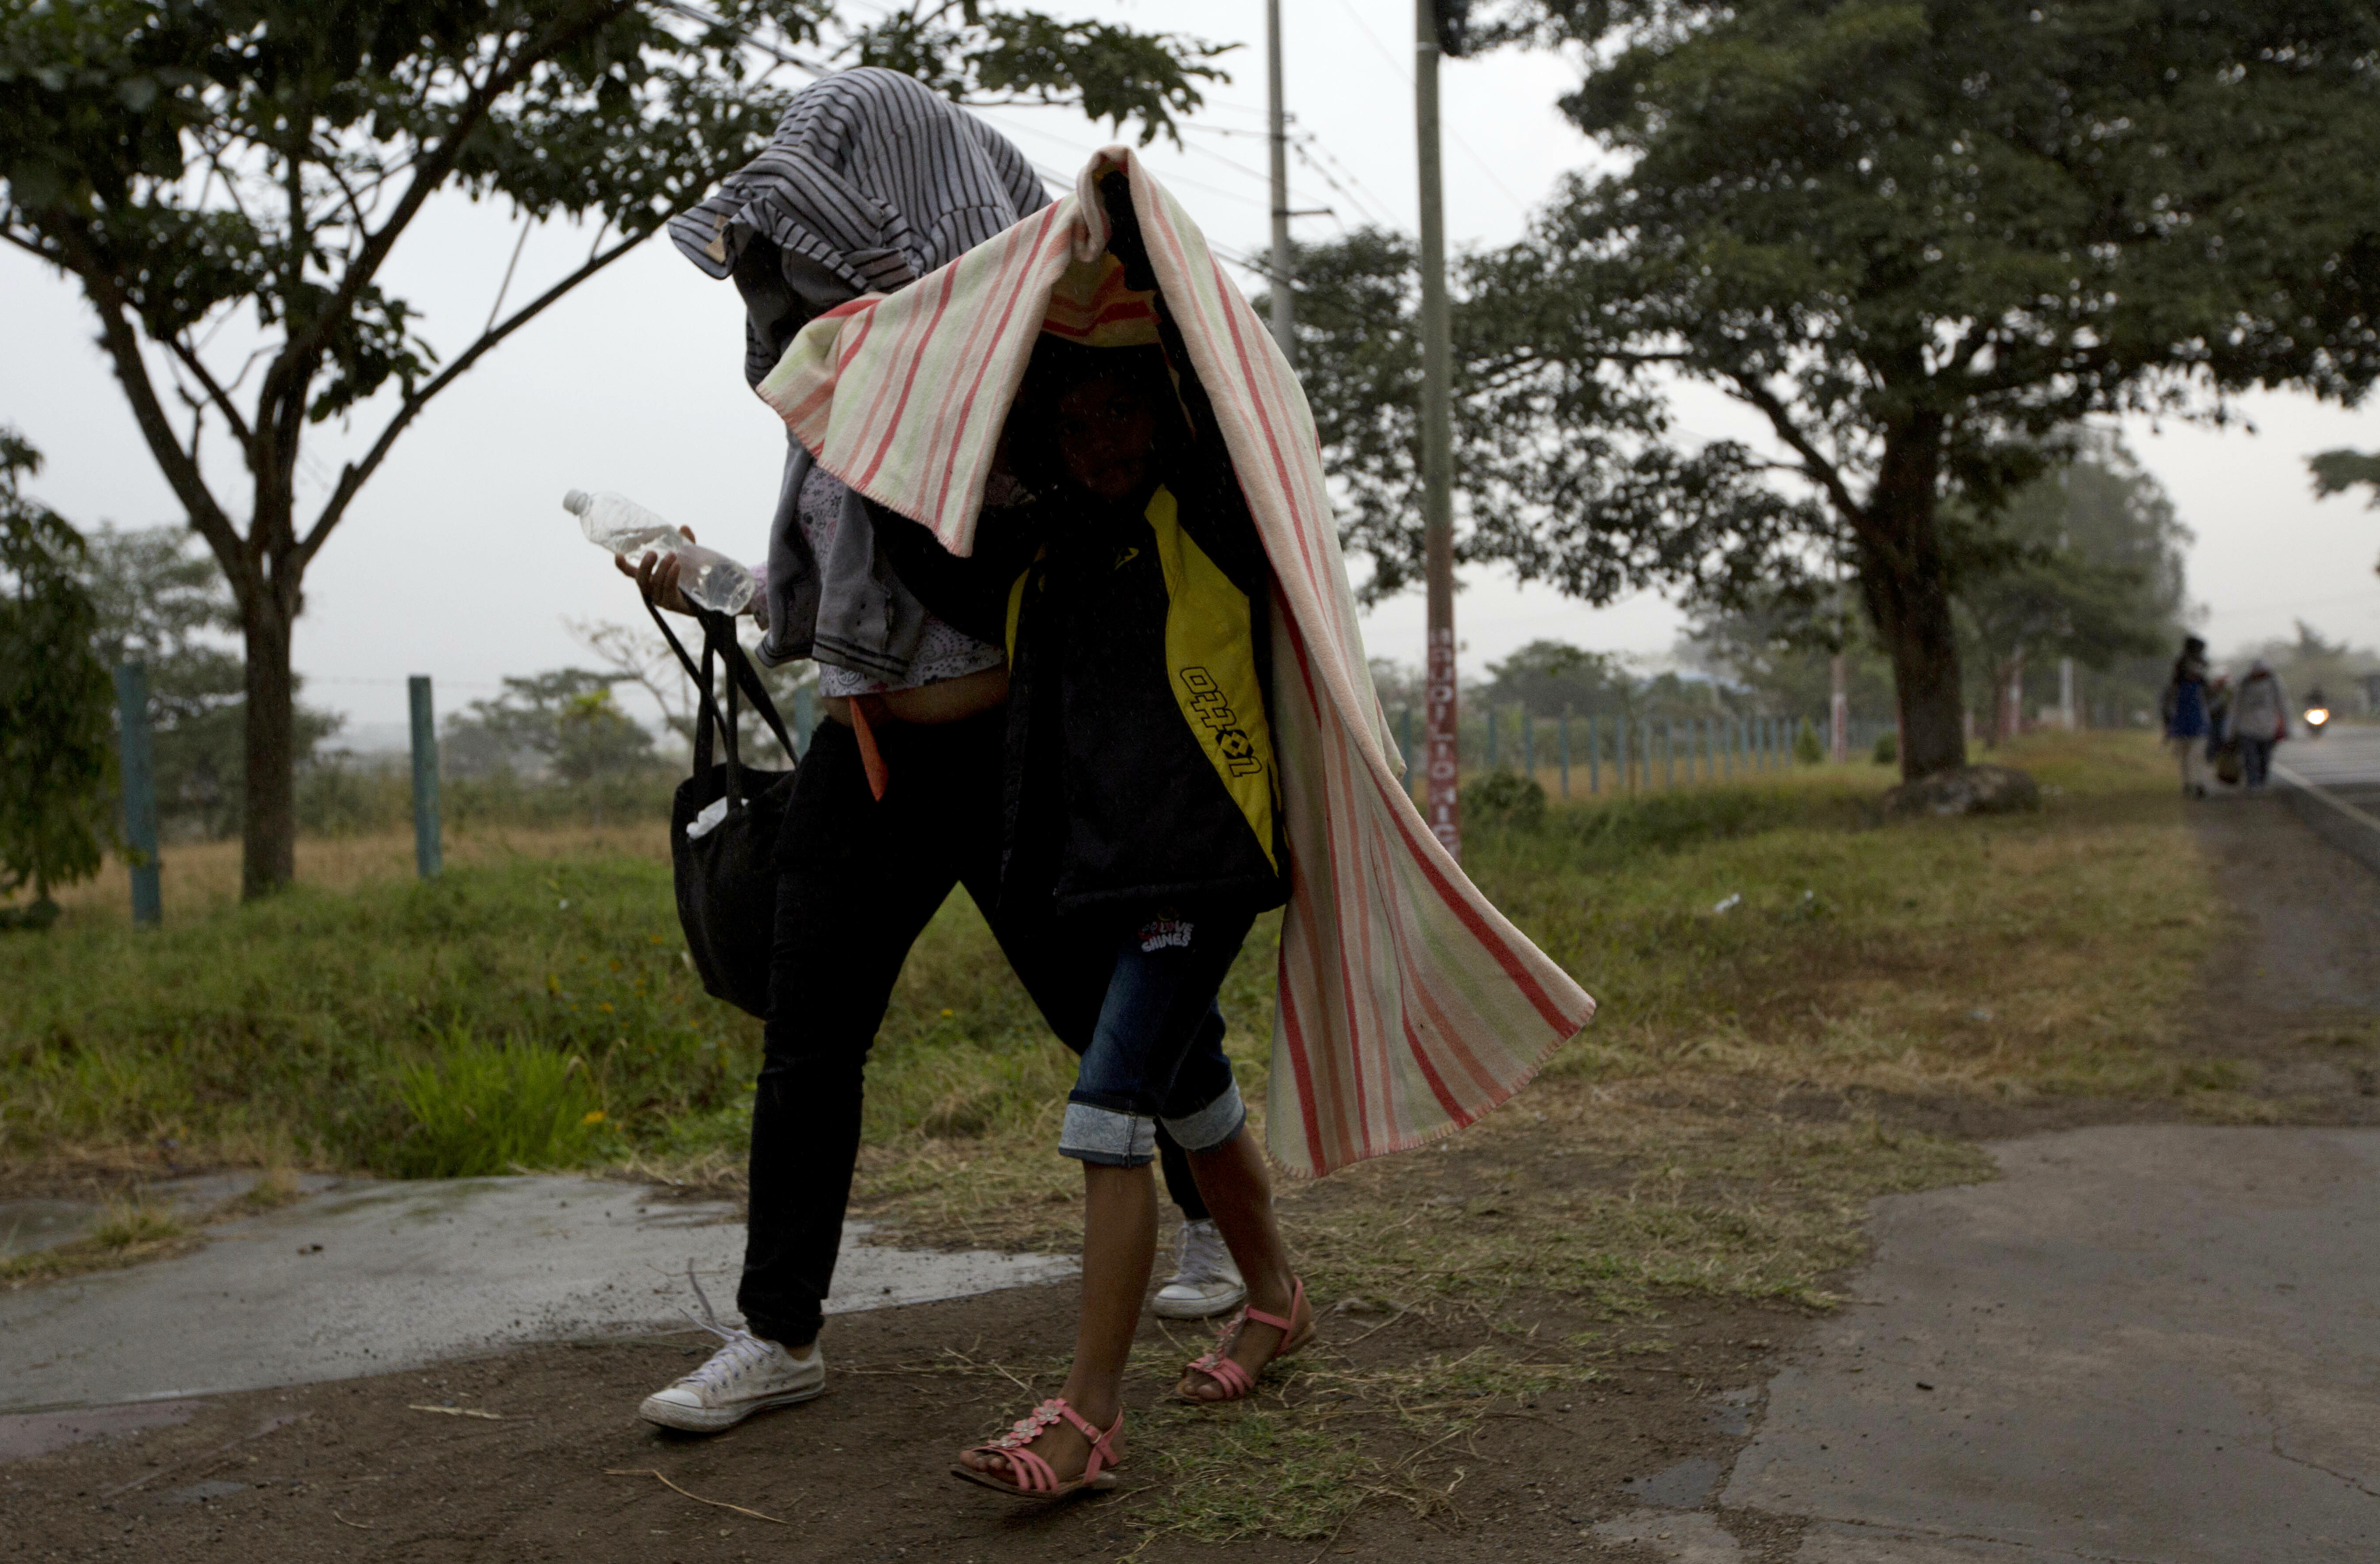 Honduran migrants shield themselves from a light rain as they walk north along the roadside through Esquipulas, Guatemala, early Wednesday, Jan. 16, 2019. The latest caravan of Honduran migrants hoping to reach the U.S. has crossed into Guatemala. (AP Photo/Moises Castillo)